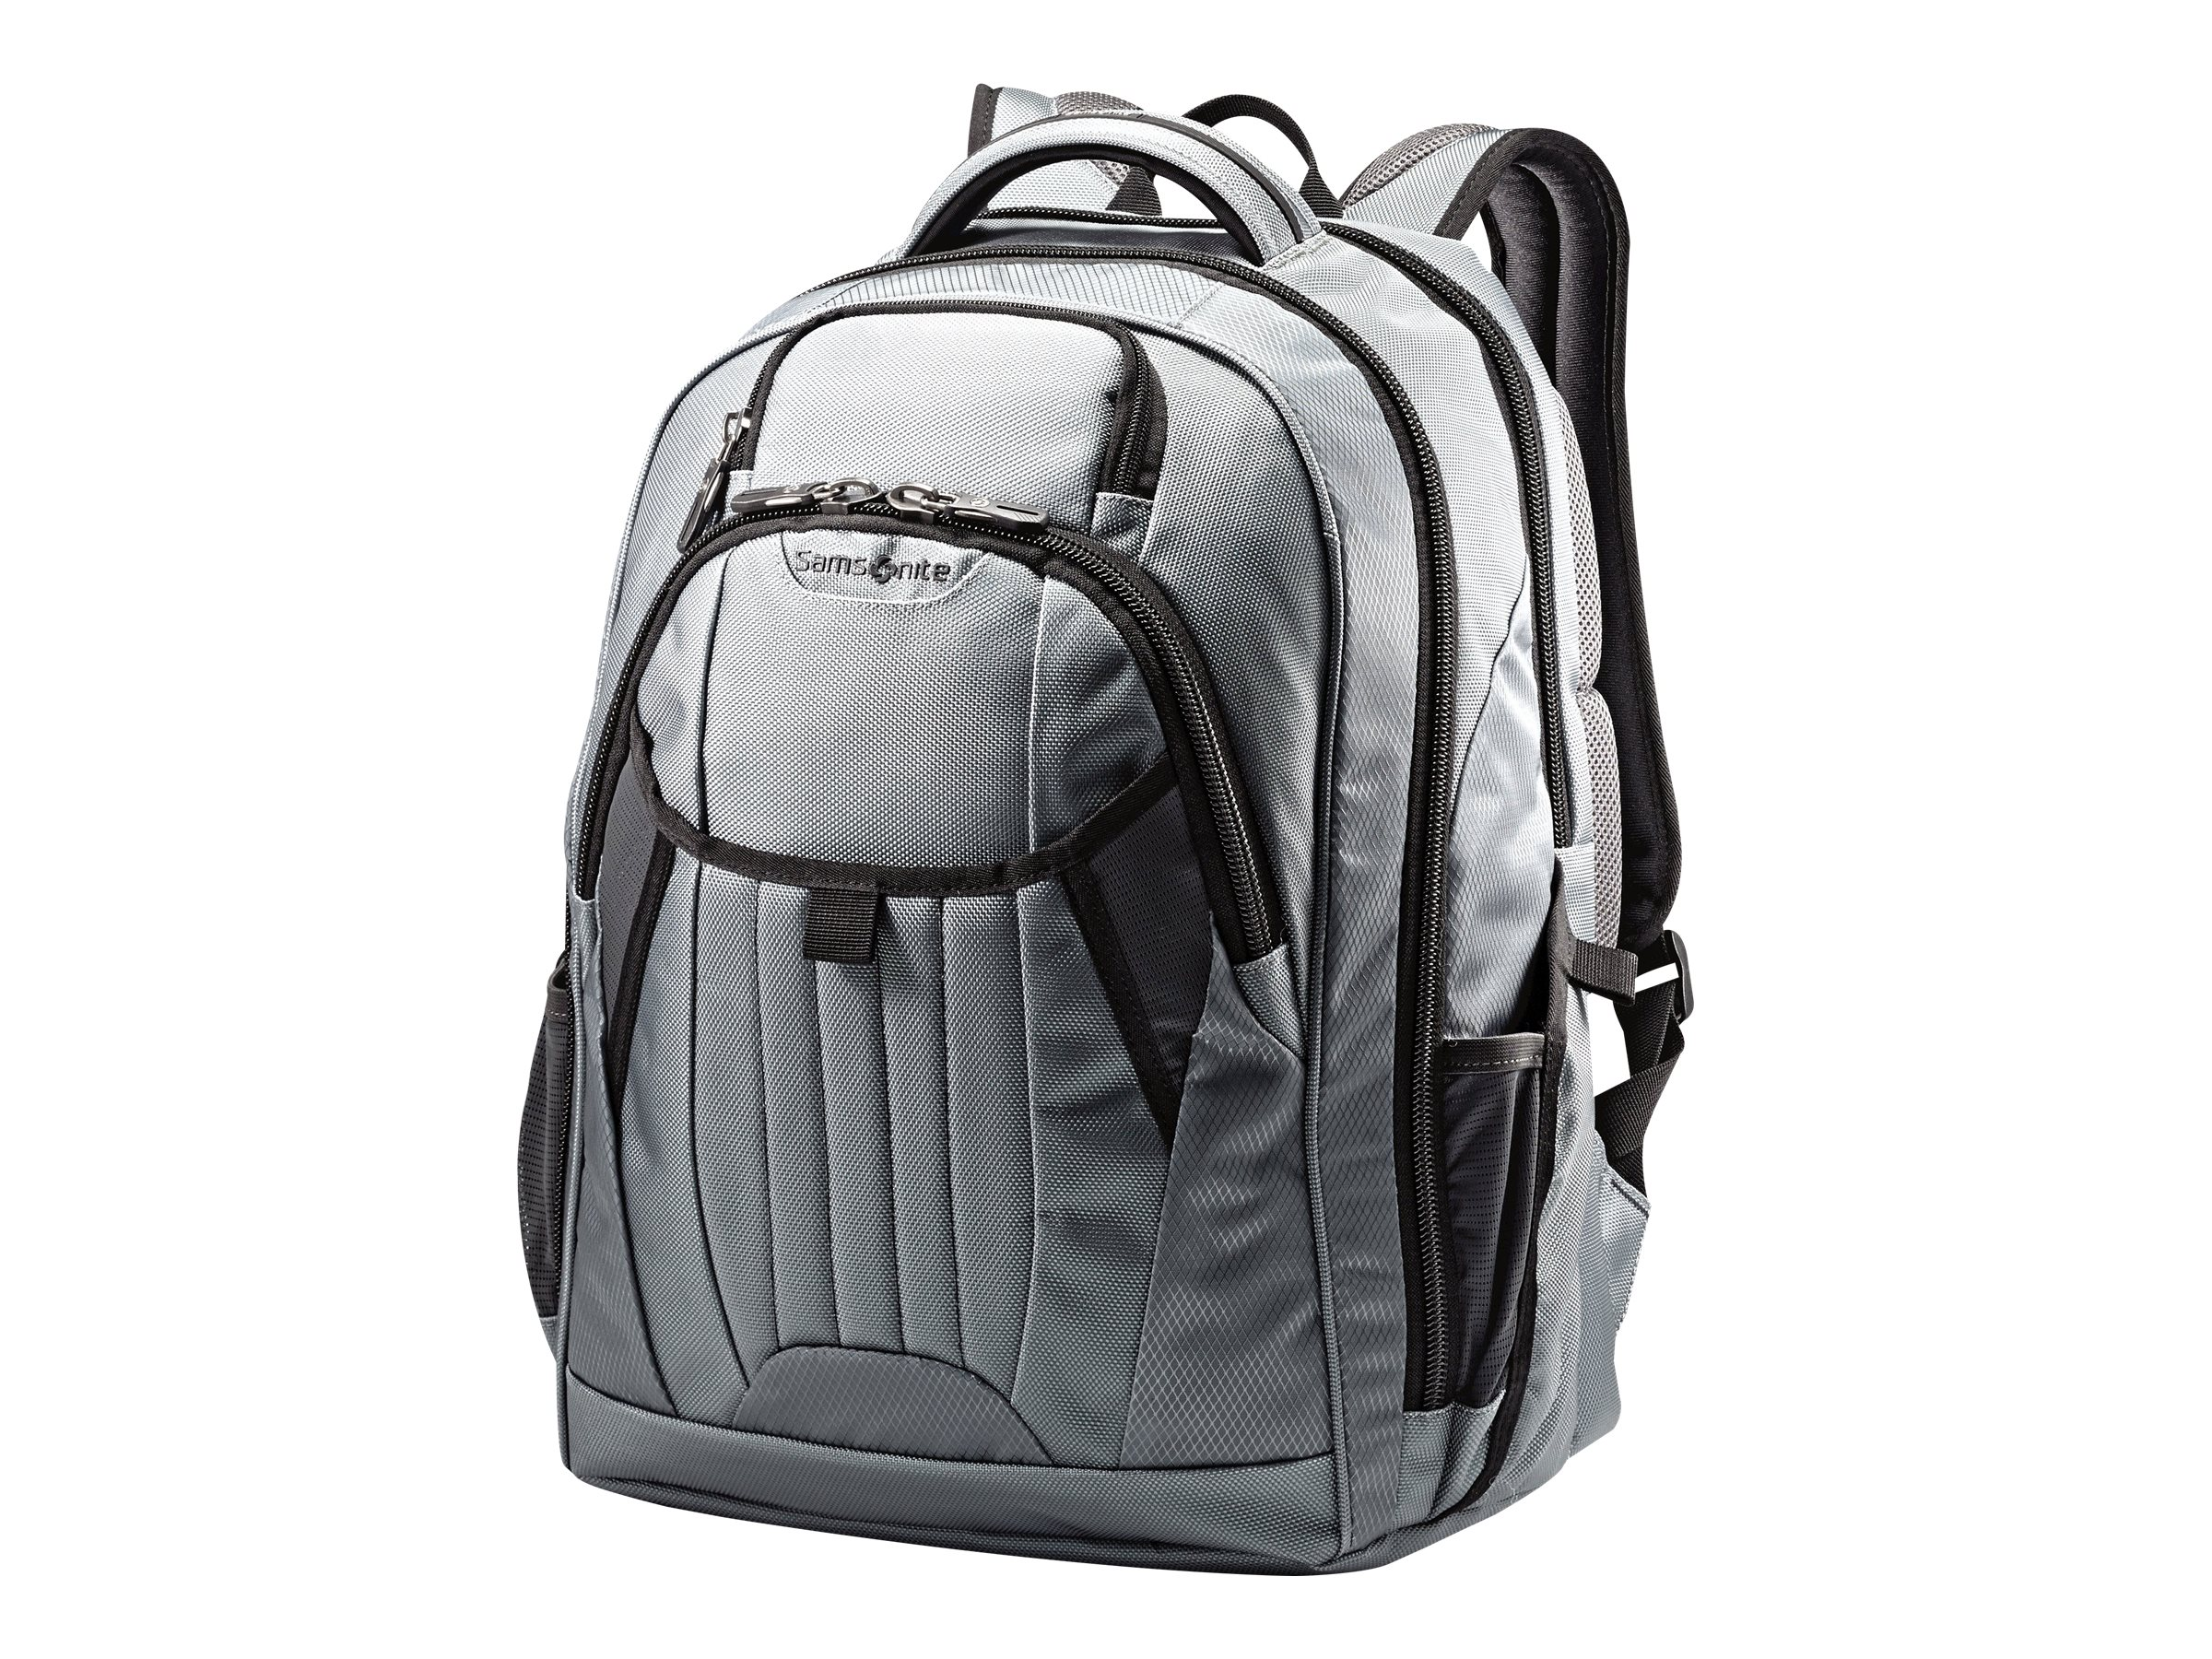 Stephen Gould Tectonic 2 Large Backpack 17, Gray